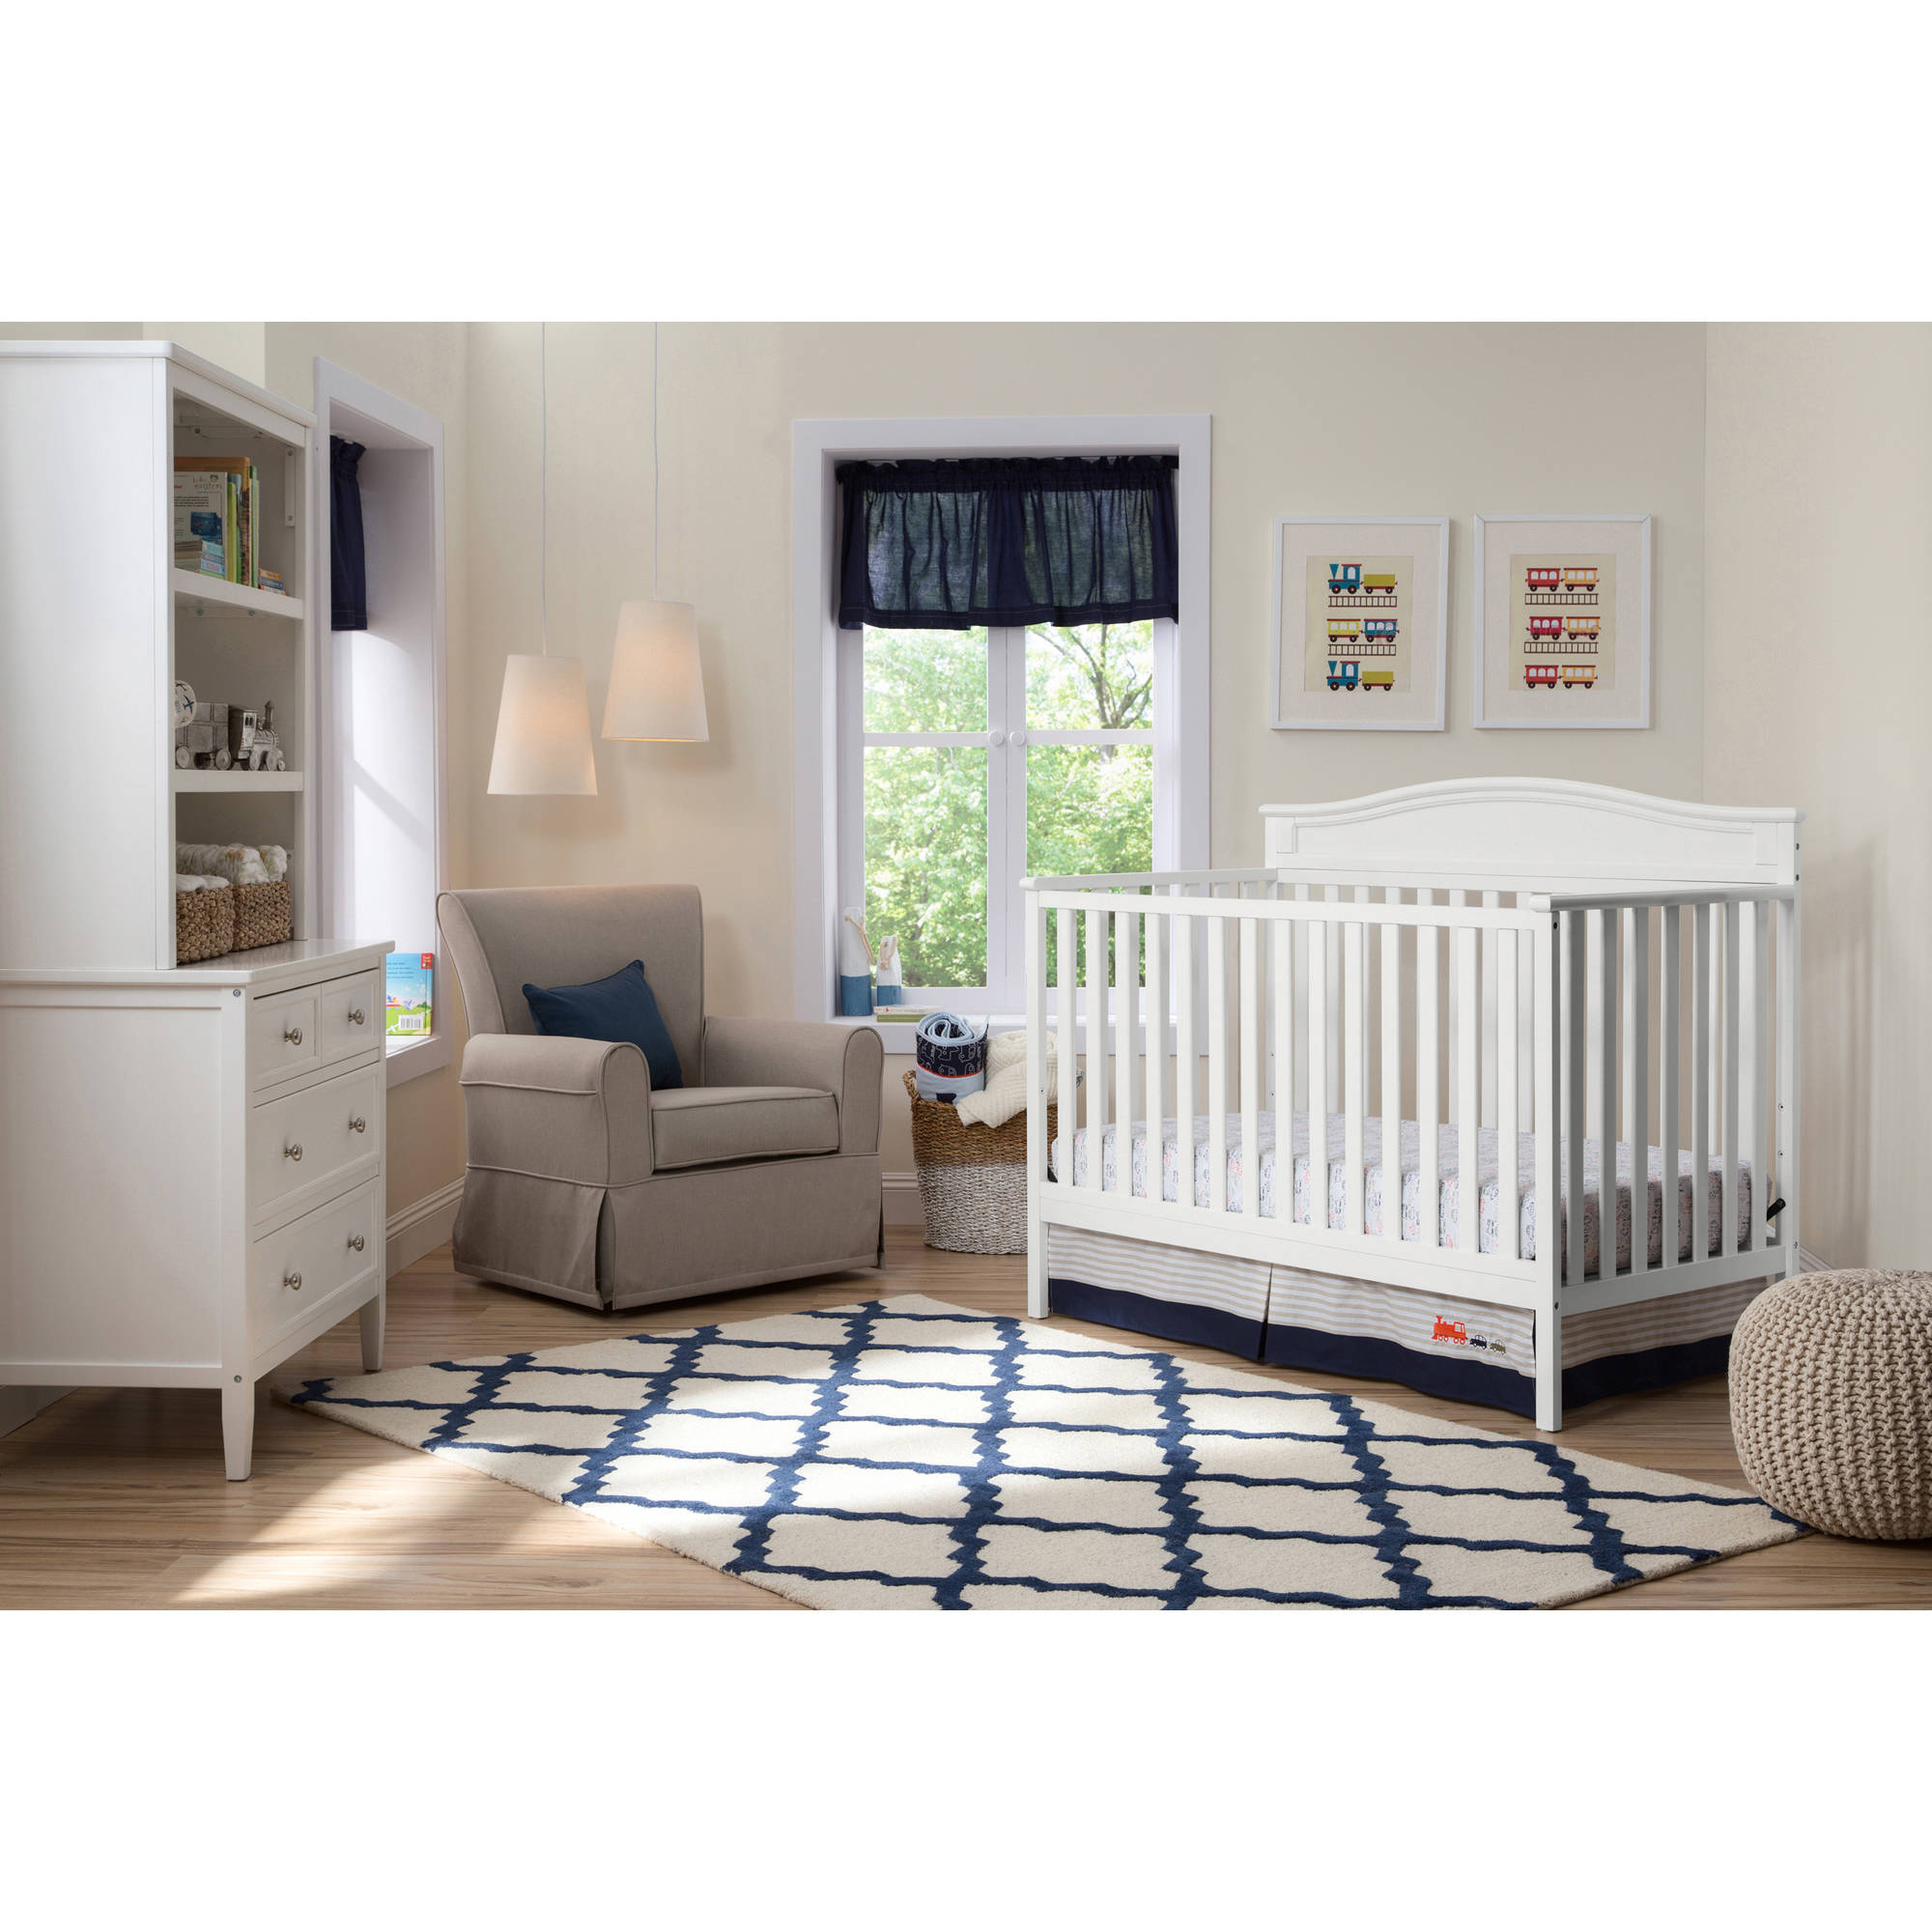 Delta Children Larkin 4-in-1 Crib, (Choose Your Finish)